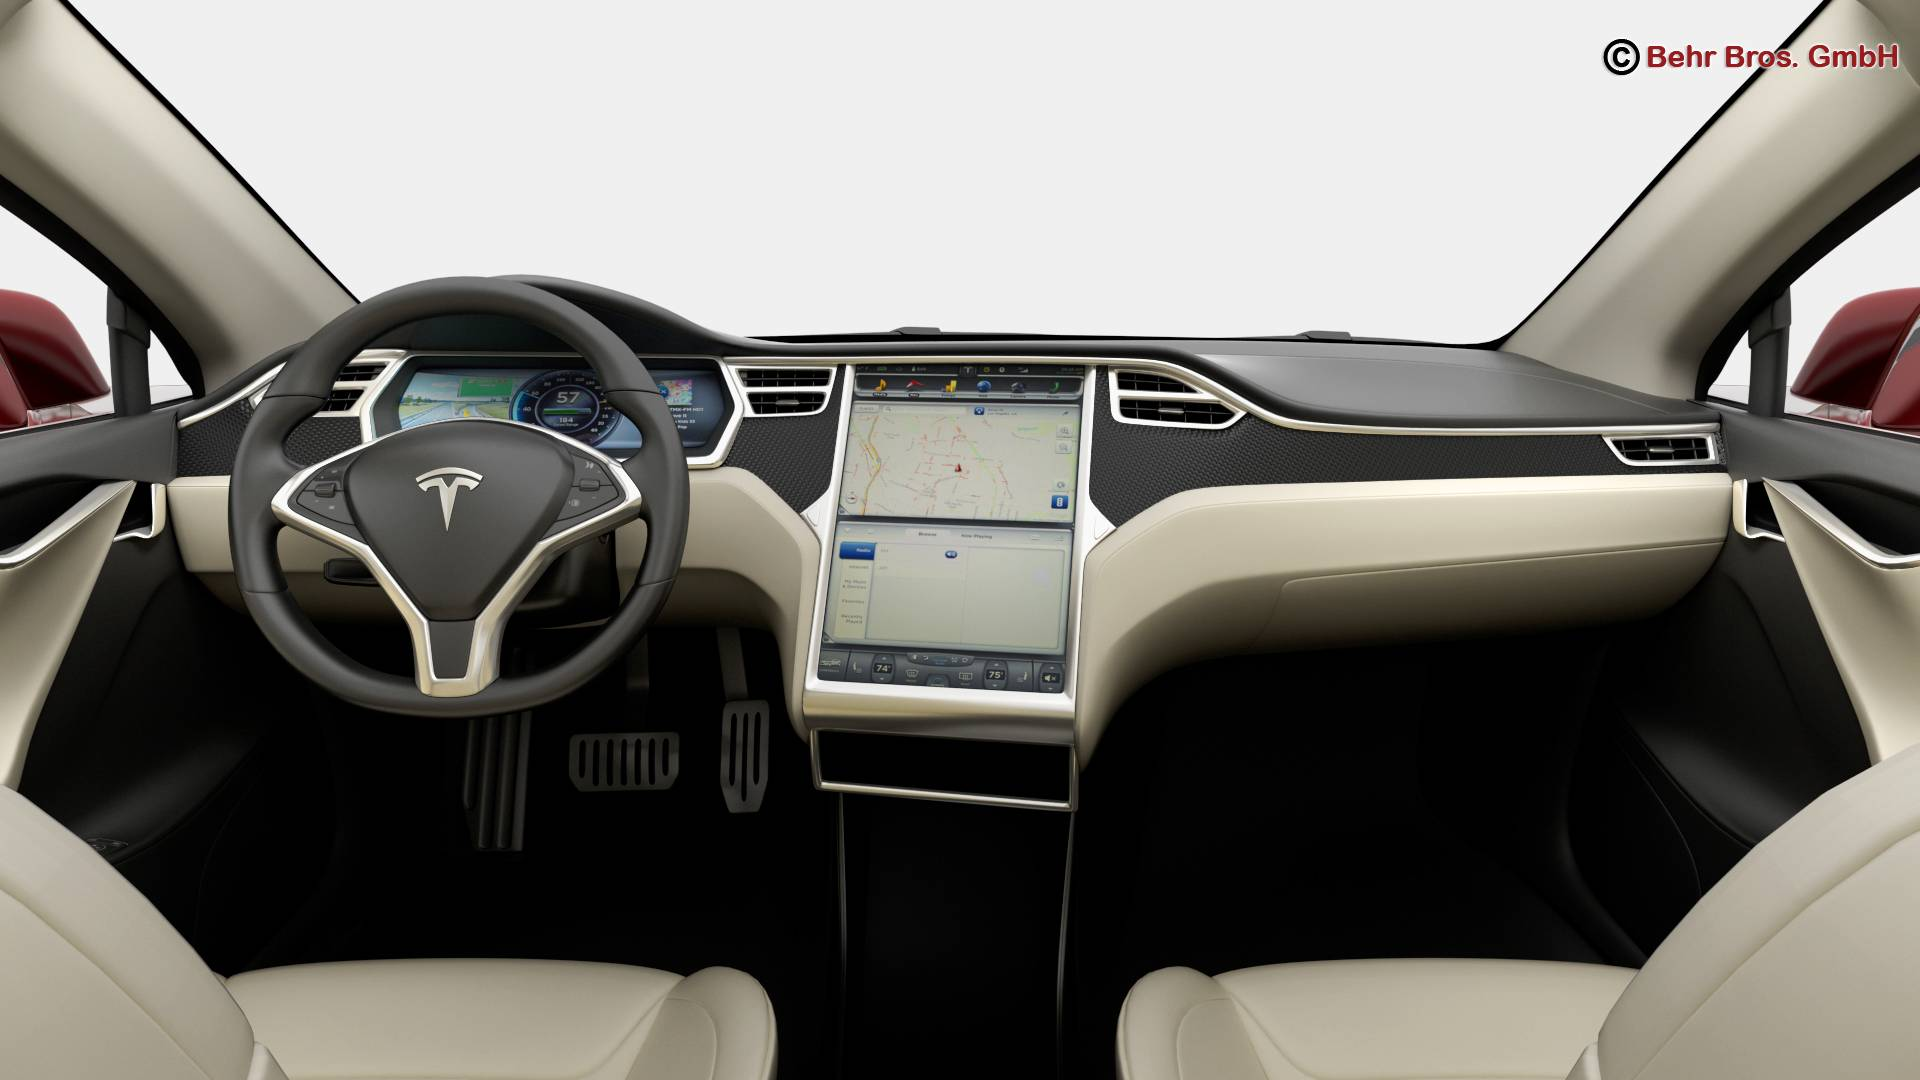 tesla model s 2015 3d model 3ds max fbx c4d lwo ma mb obj 217618